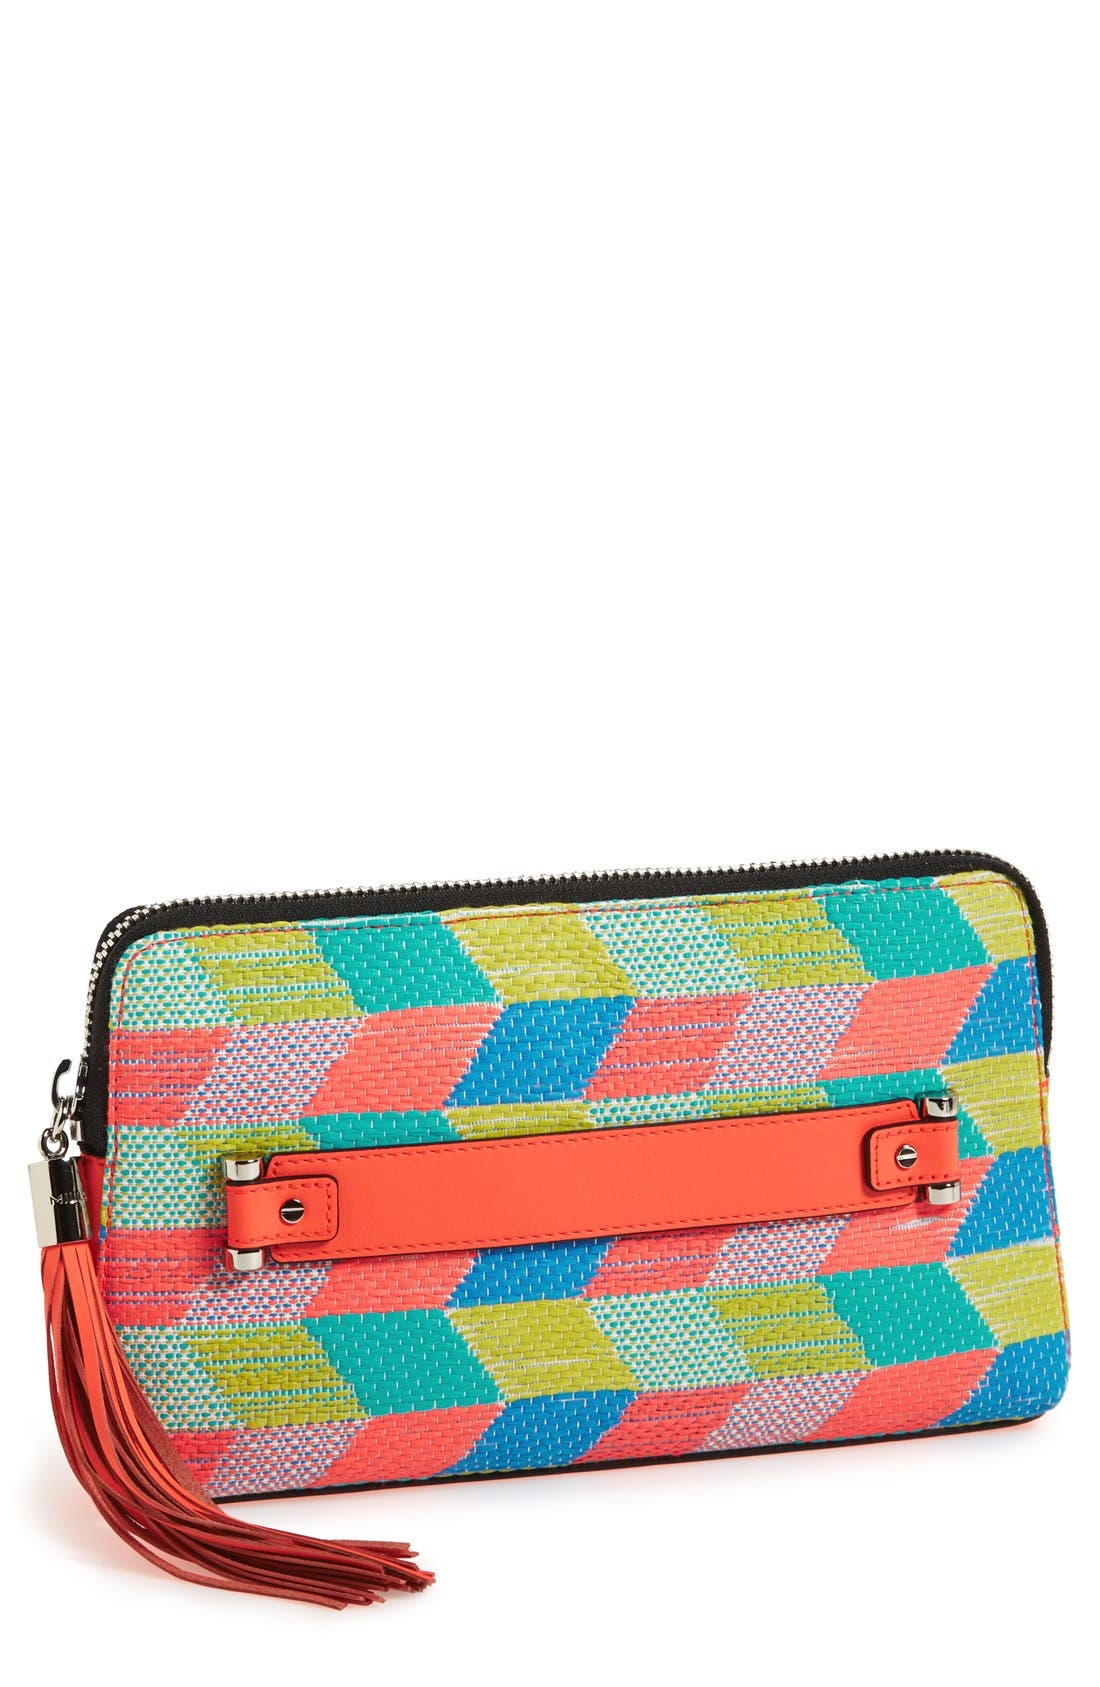 Main Image - Milly Neon Tweed Clutch